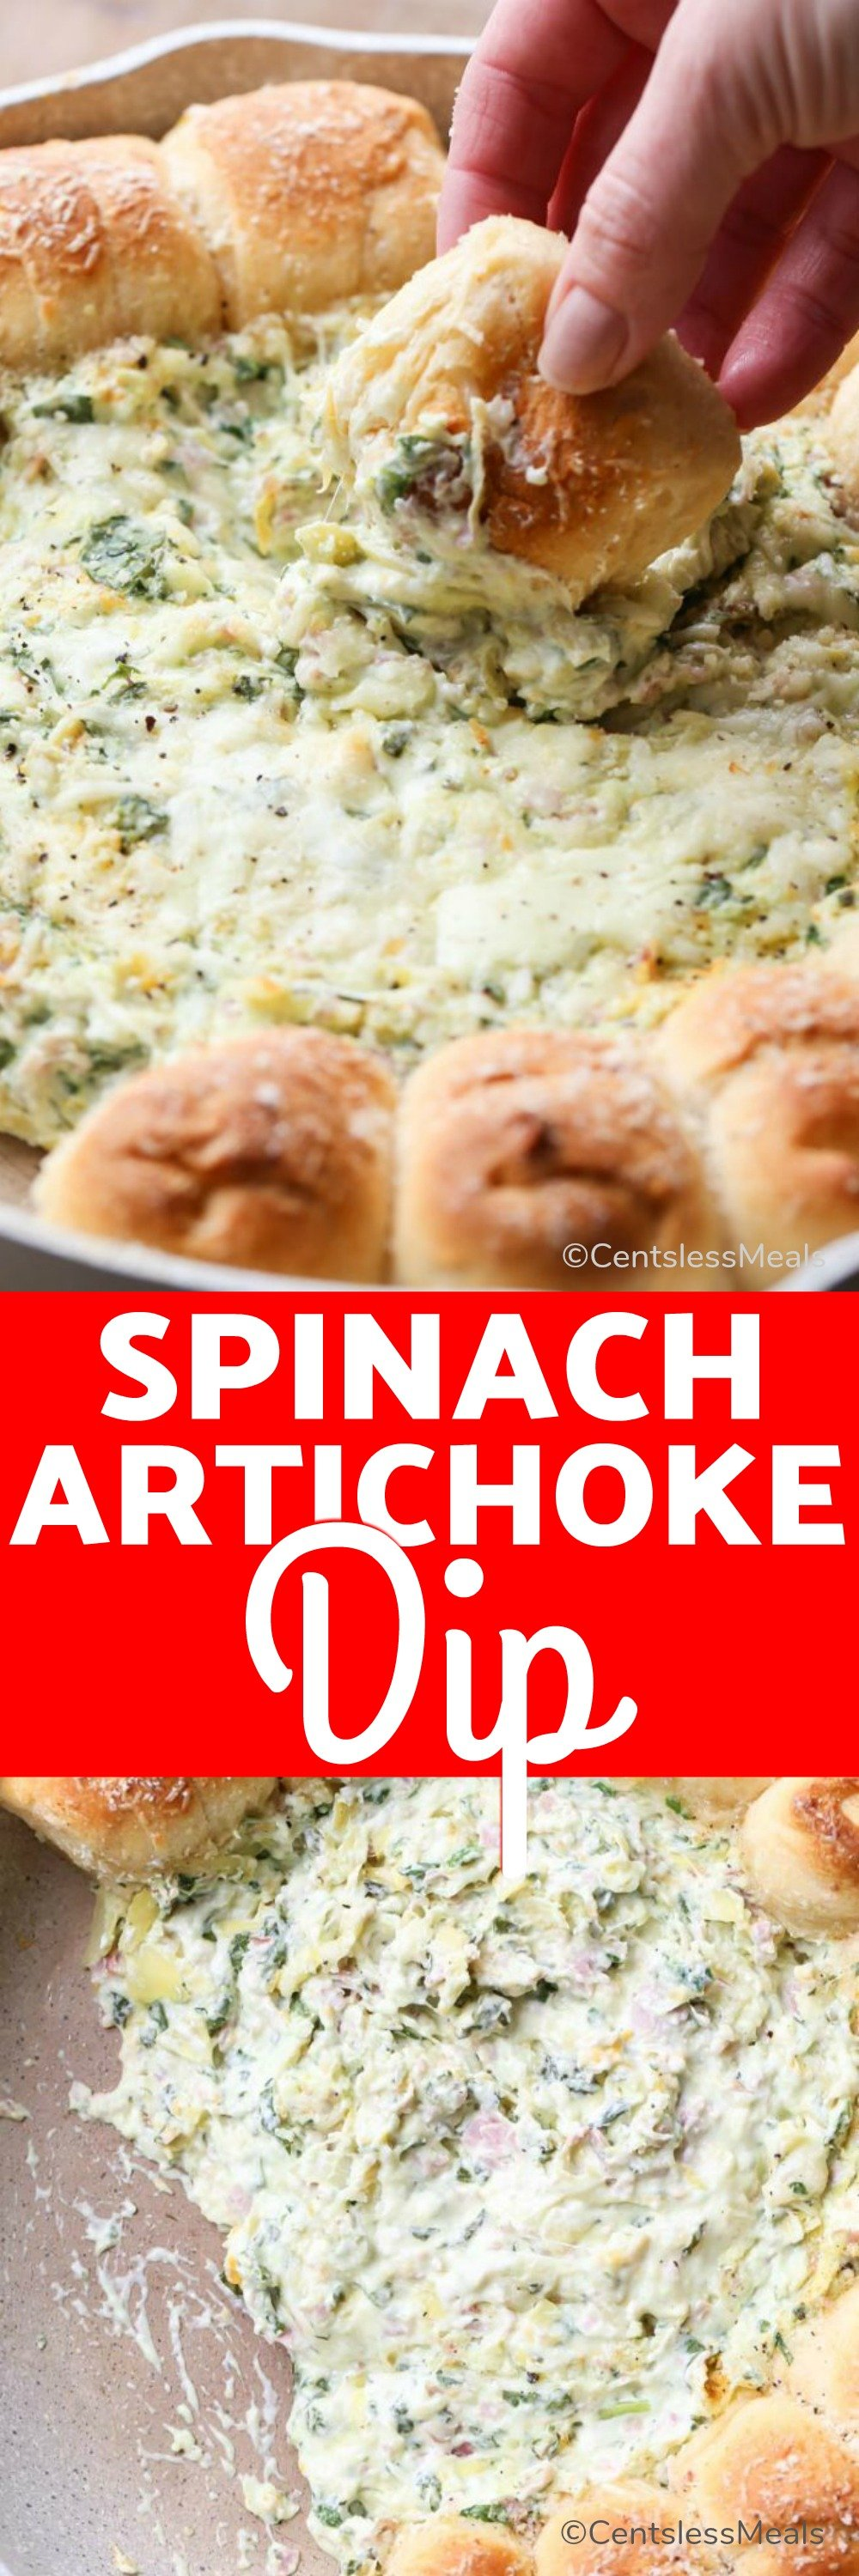 Pull-Apart Crescents with Spinach Artichoke Dip is an easy one-skillet dip recipe that your family will love! #centslessmeals #spinachartichokedip #dip #hamdip #artichokedip #cheesedip #hotdip #appetizer #partydip #partyfood